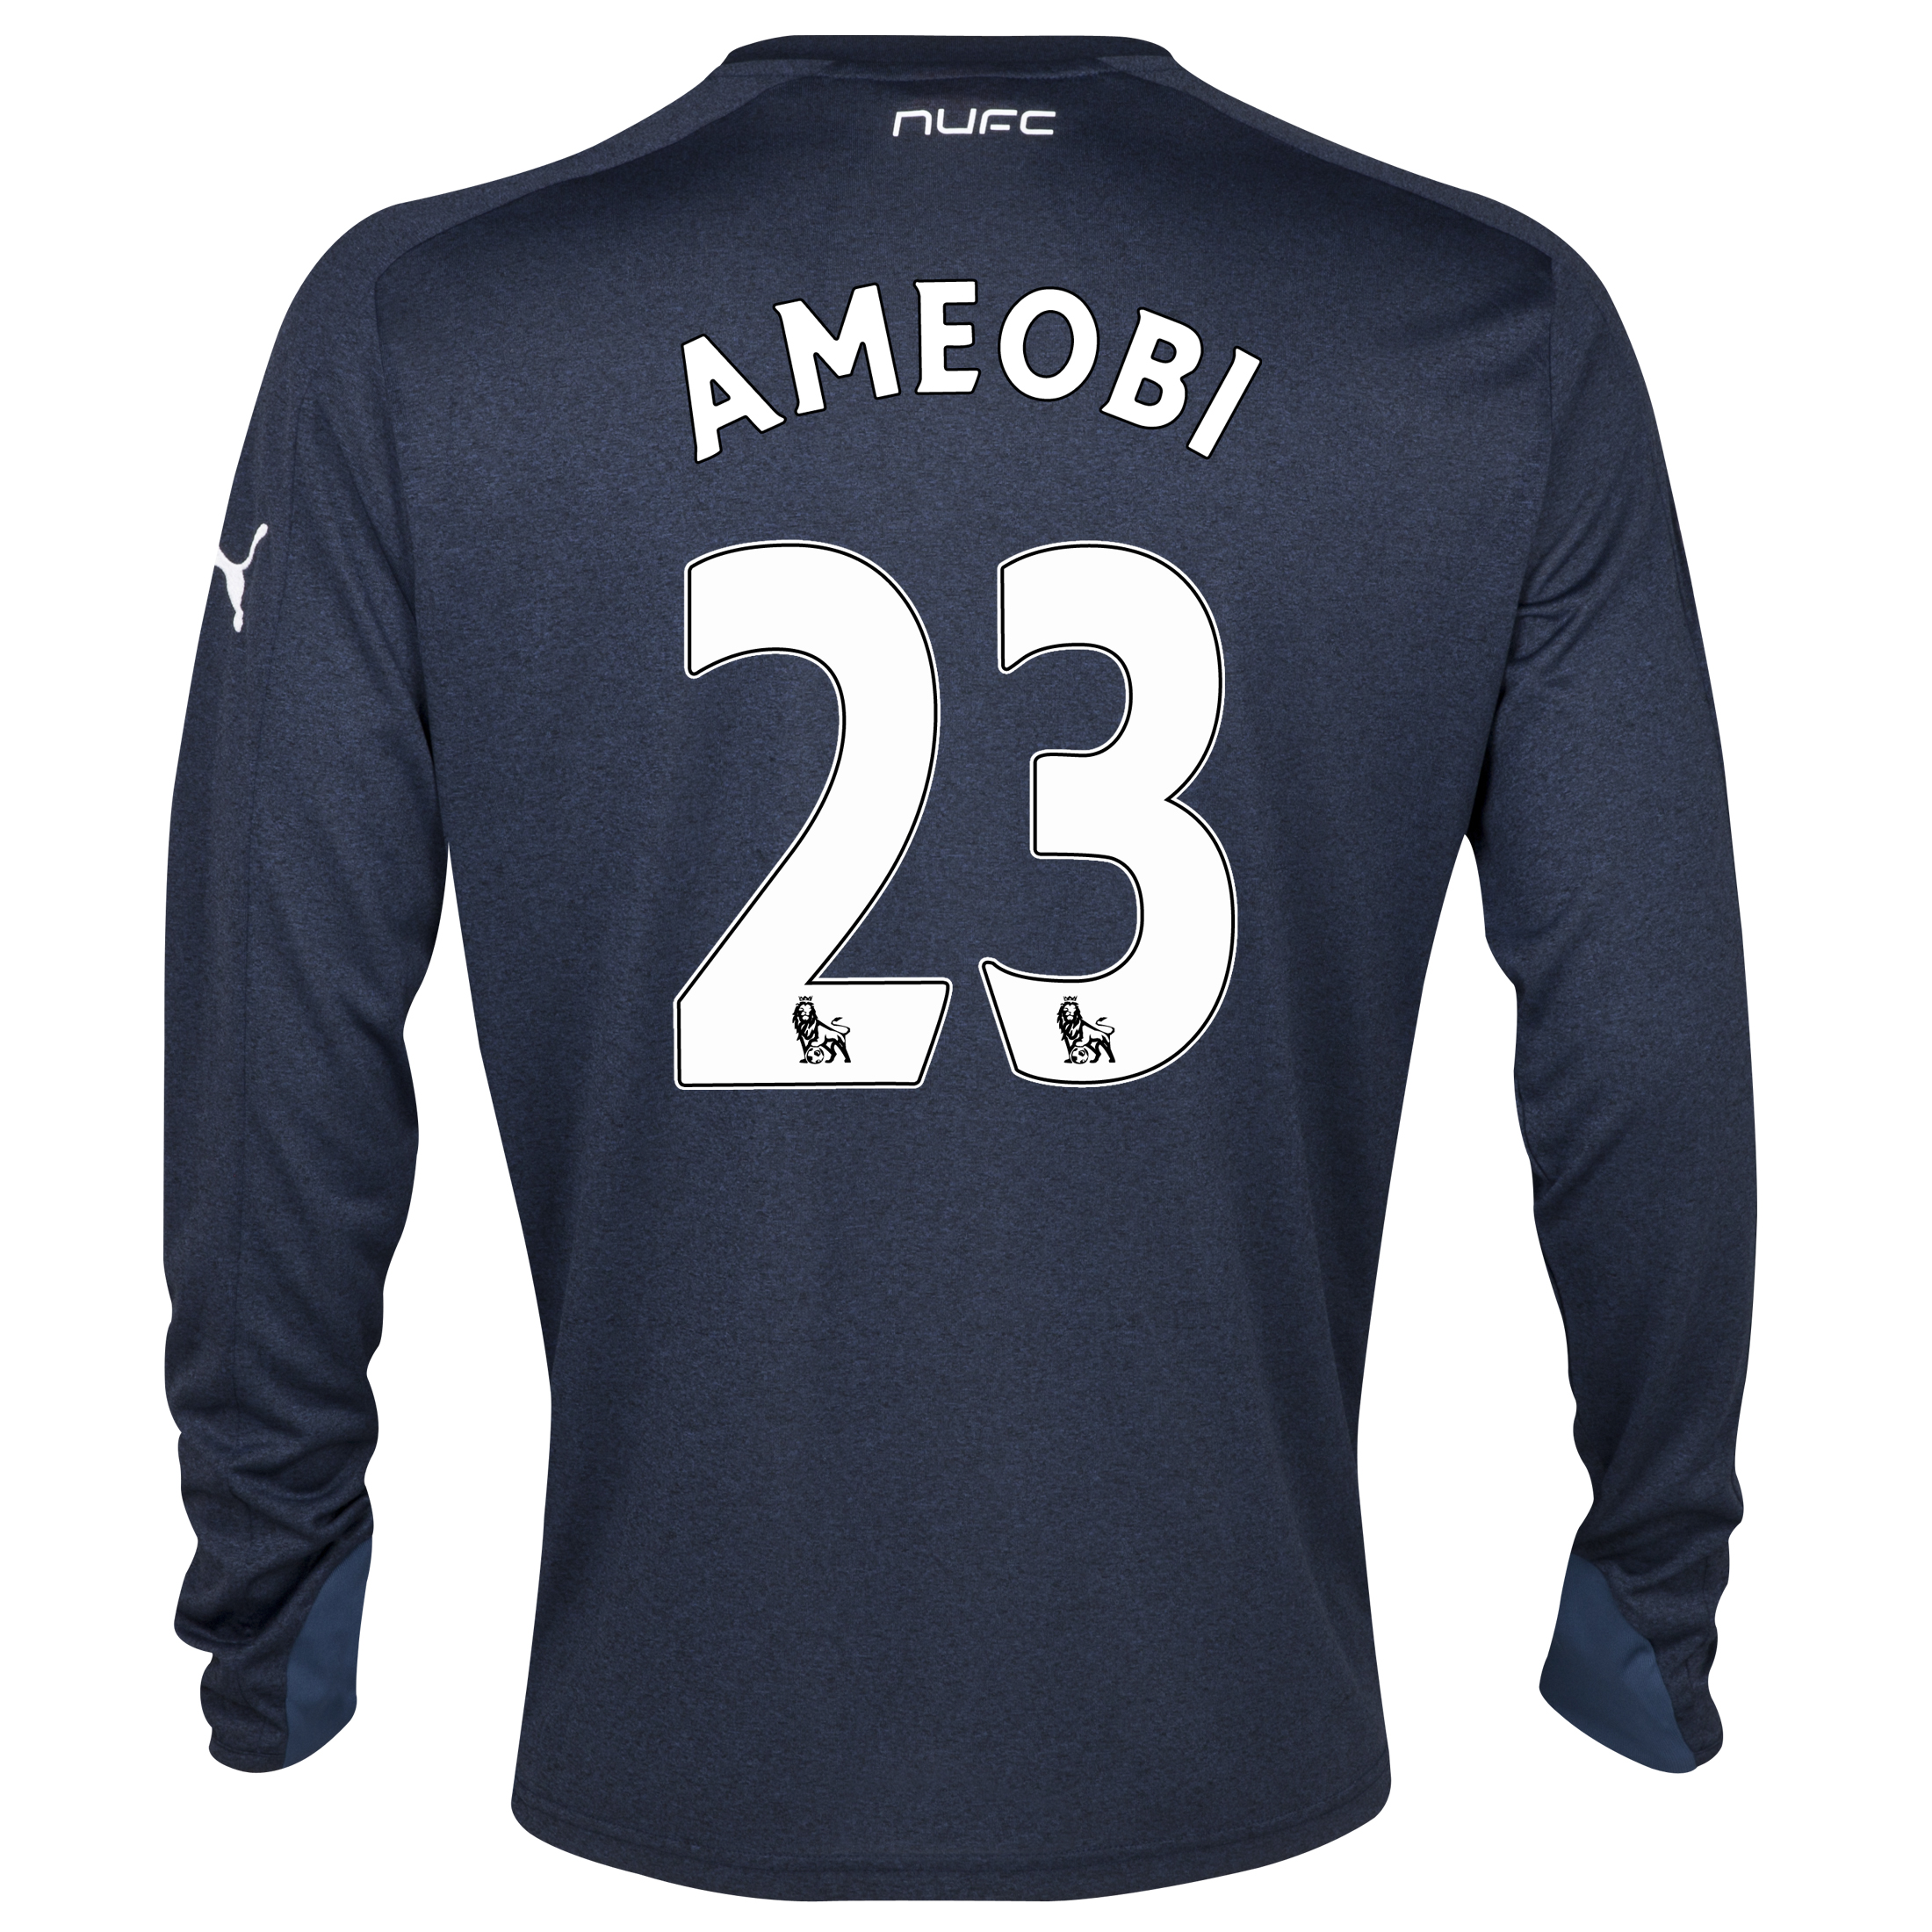 Newcastle United Away Shirt 2013/14 -Womens with Ameobi 23 printing